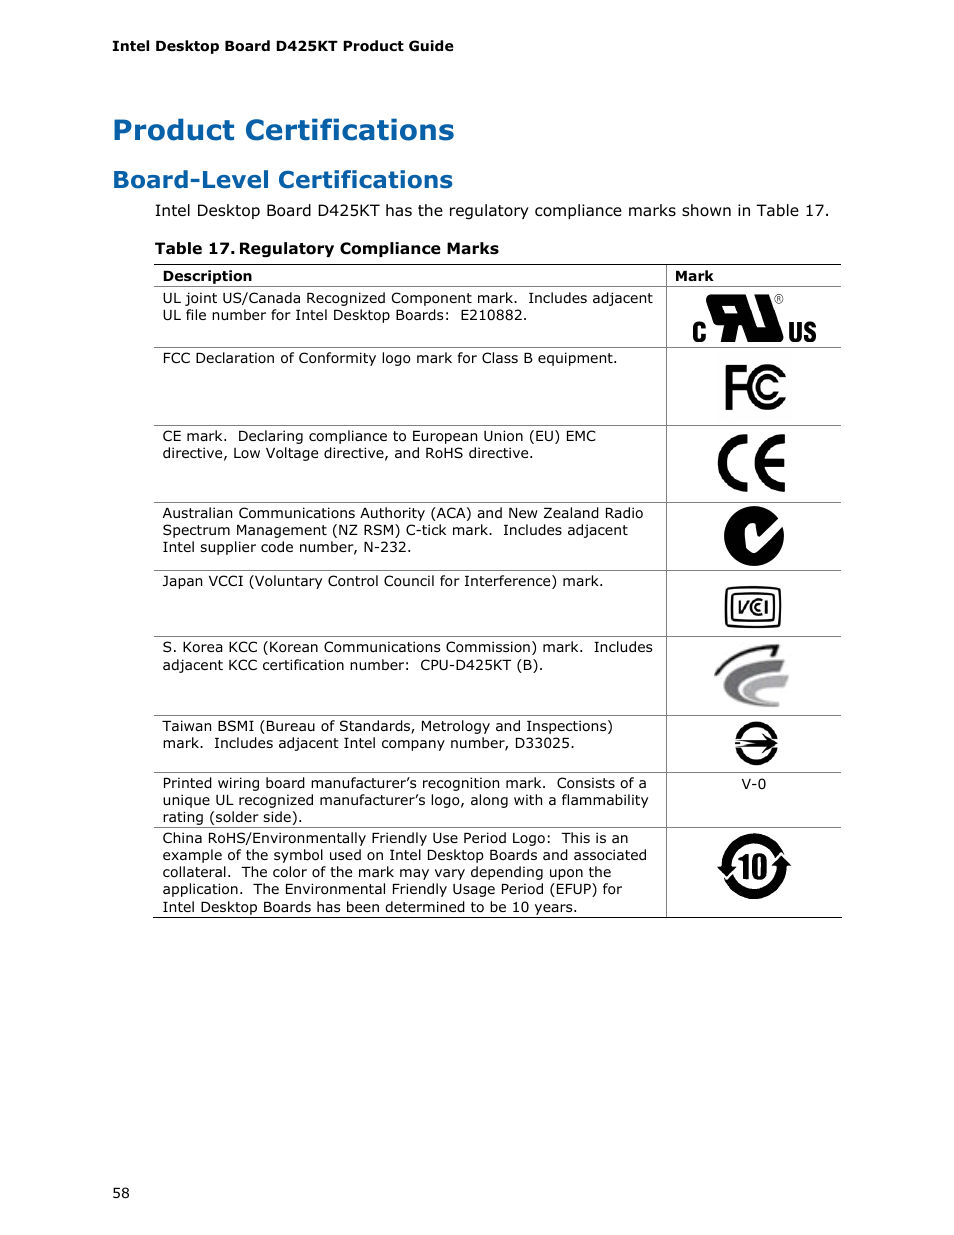 Product Certifications Board Level Certifications Regulatory